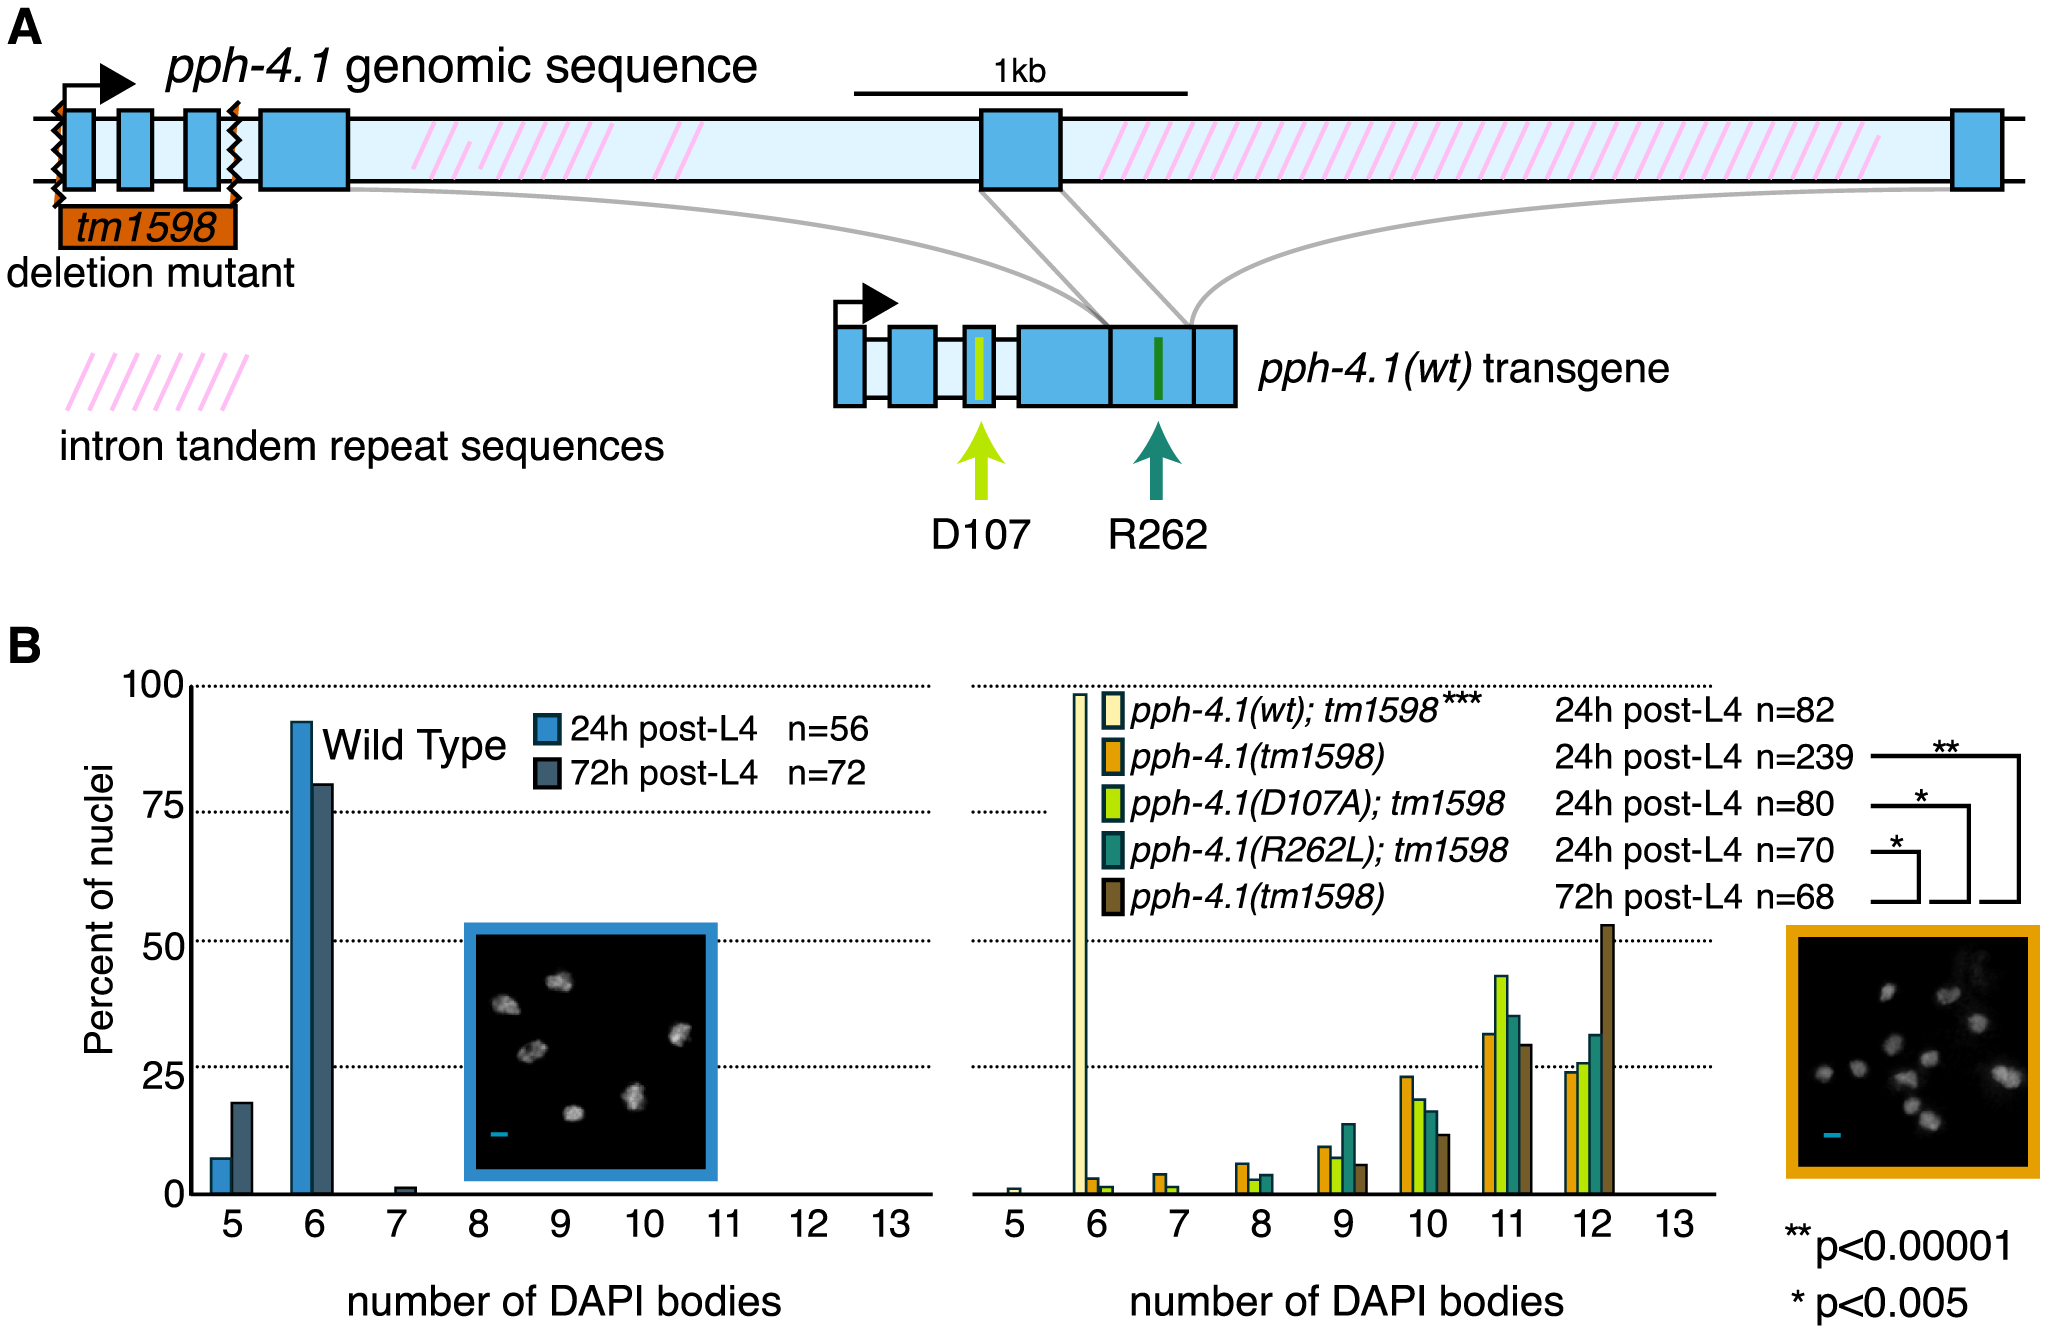 Mutations in the <i>pph-4.1</i> gene lead to loss of chiasmata.